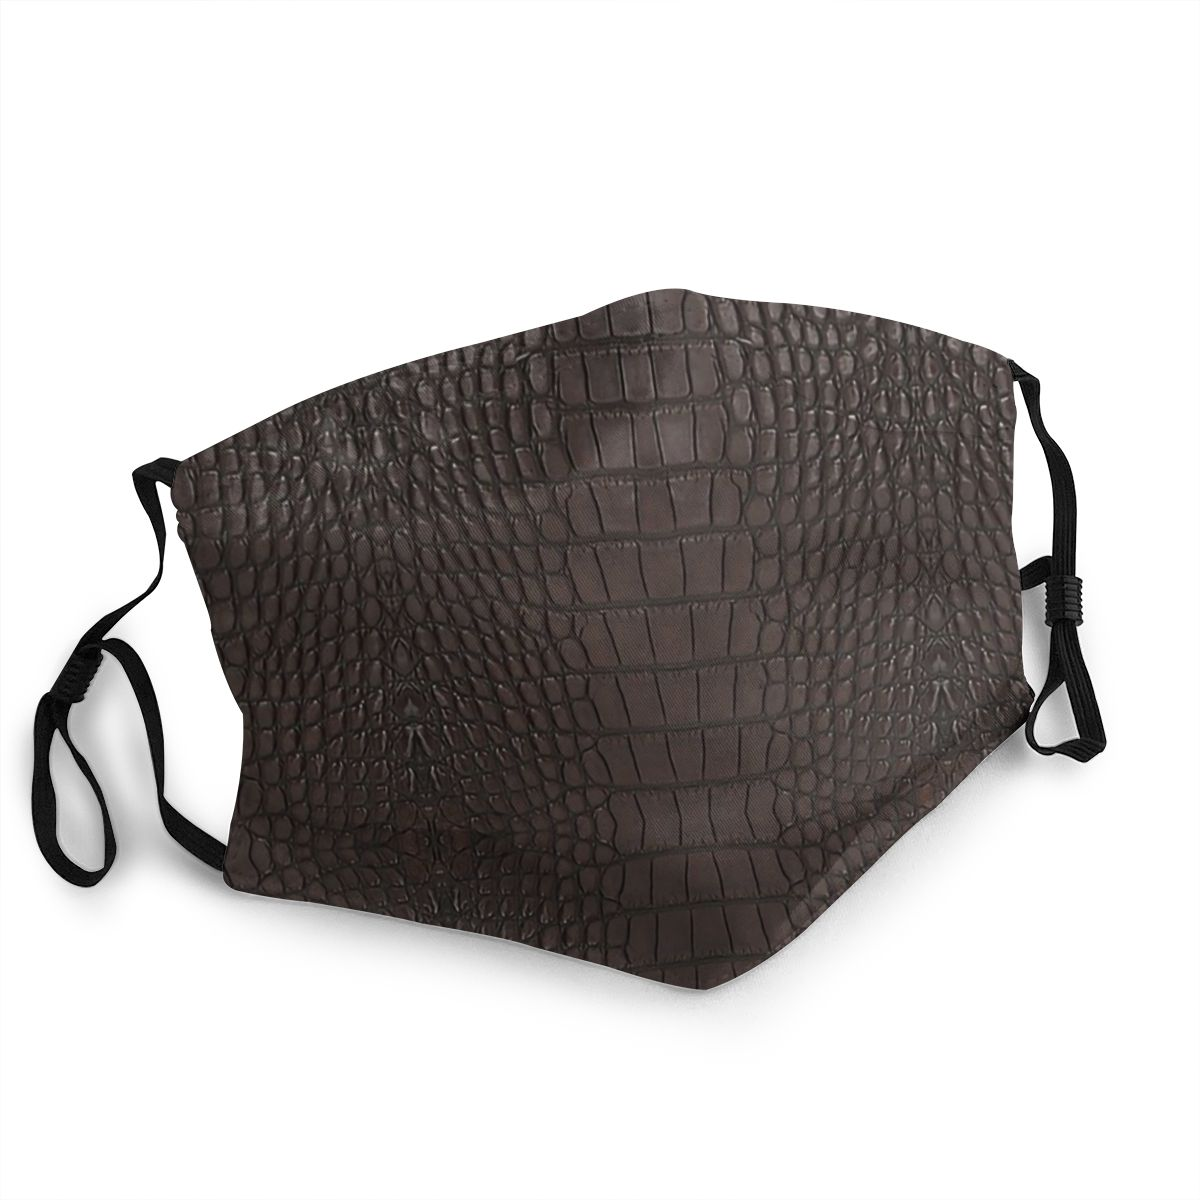 Brown Gator Leather Adult Reusable Mouth Face Mask Anti Bacterial Dustproof Protection Cover Respirator